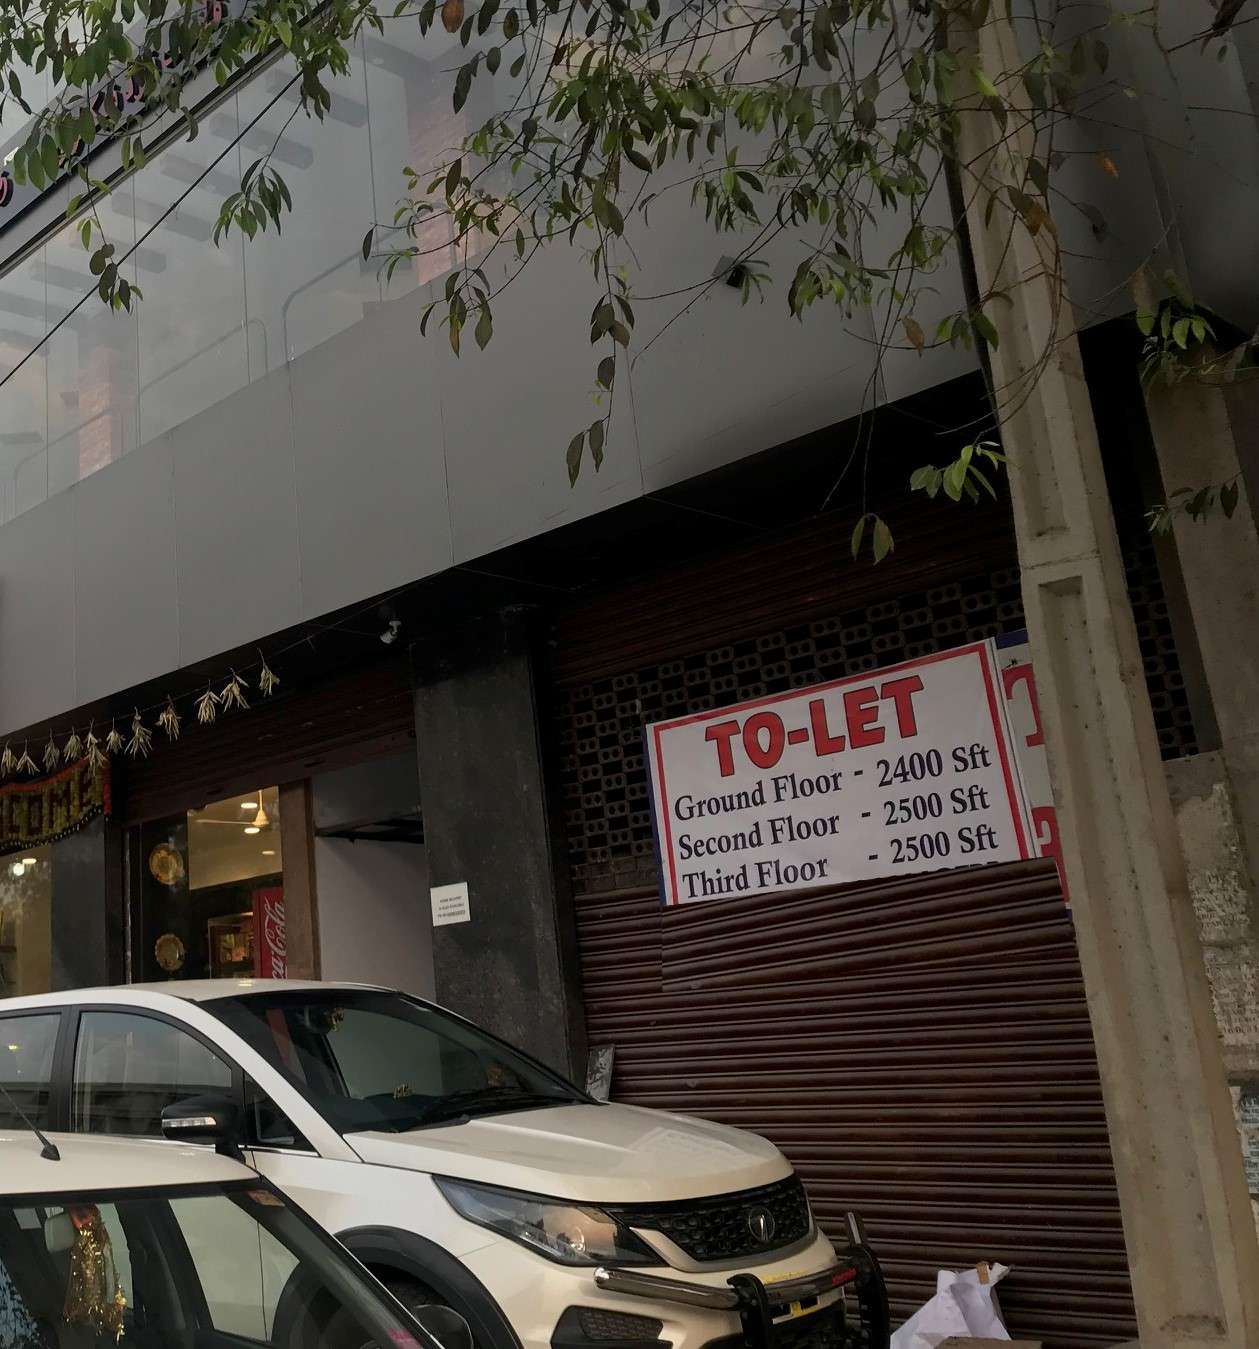 Commercial Space for Lease / Rent in Nmdc Hyderabad